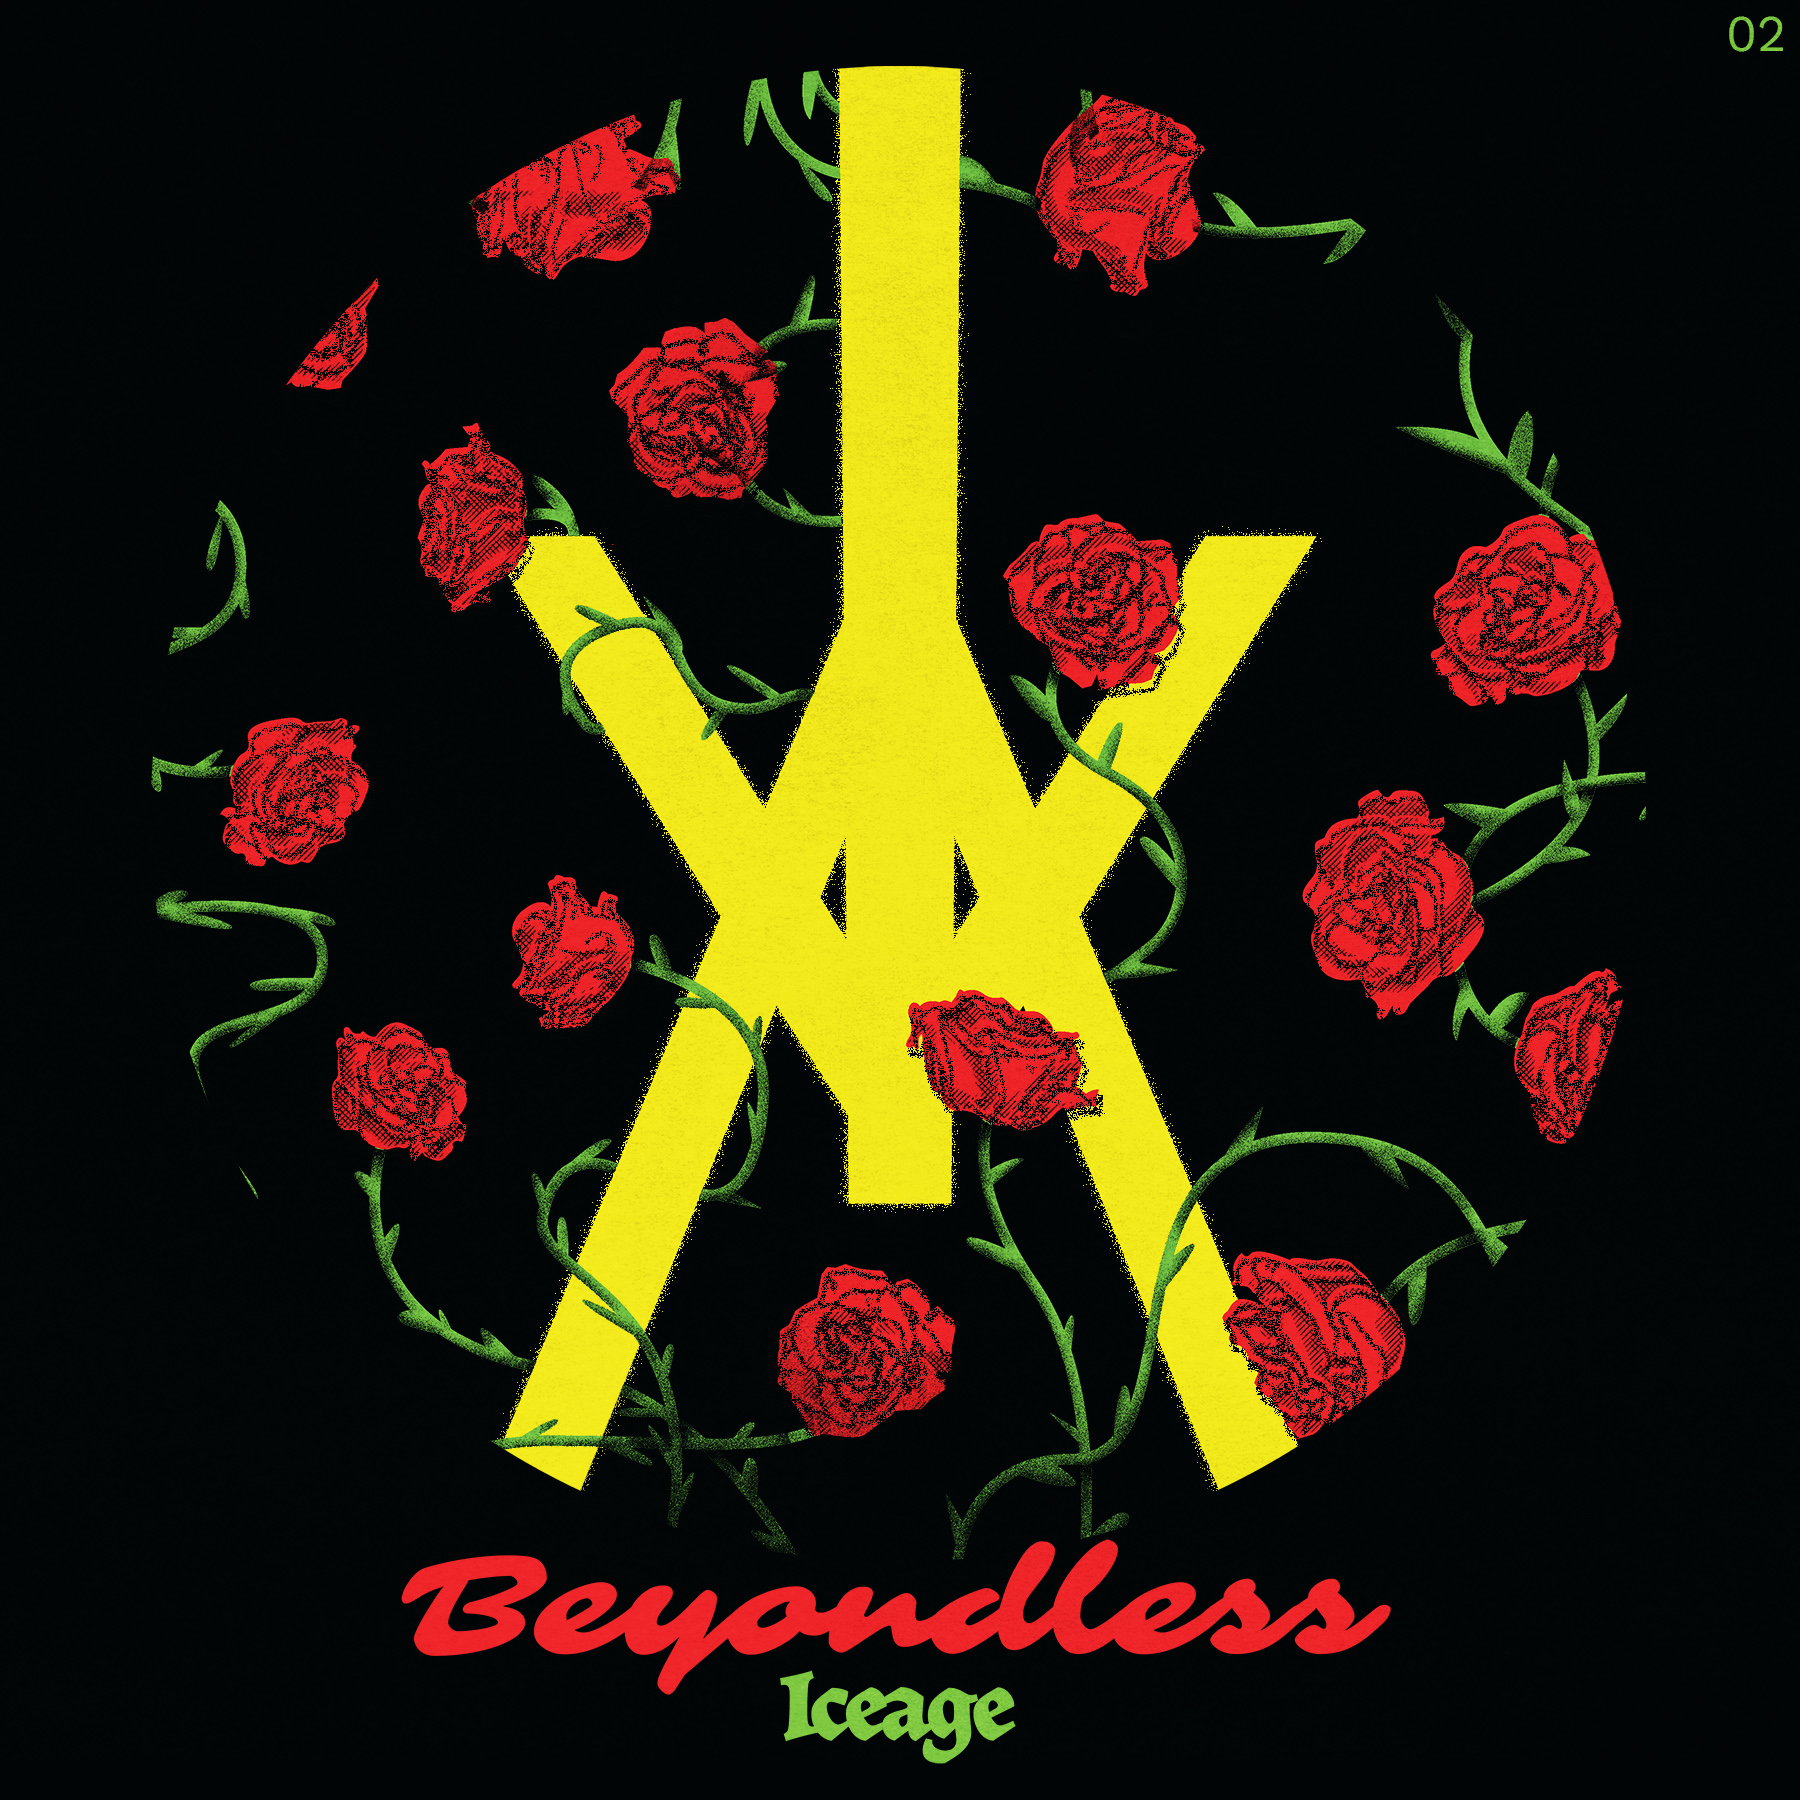 Beyondless by Iceage